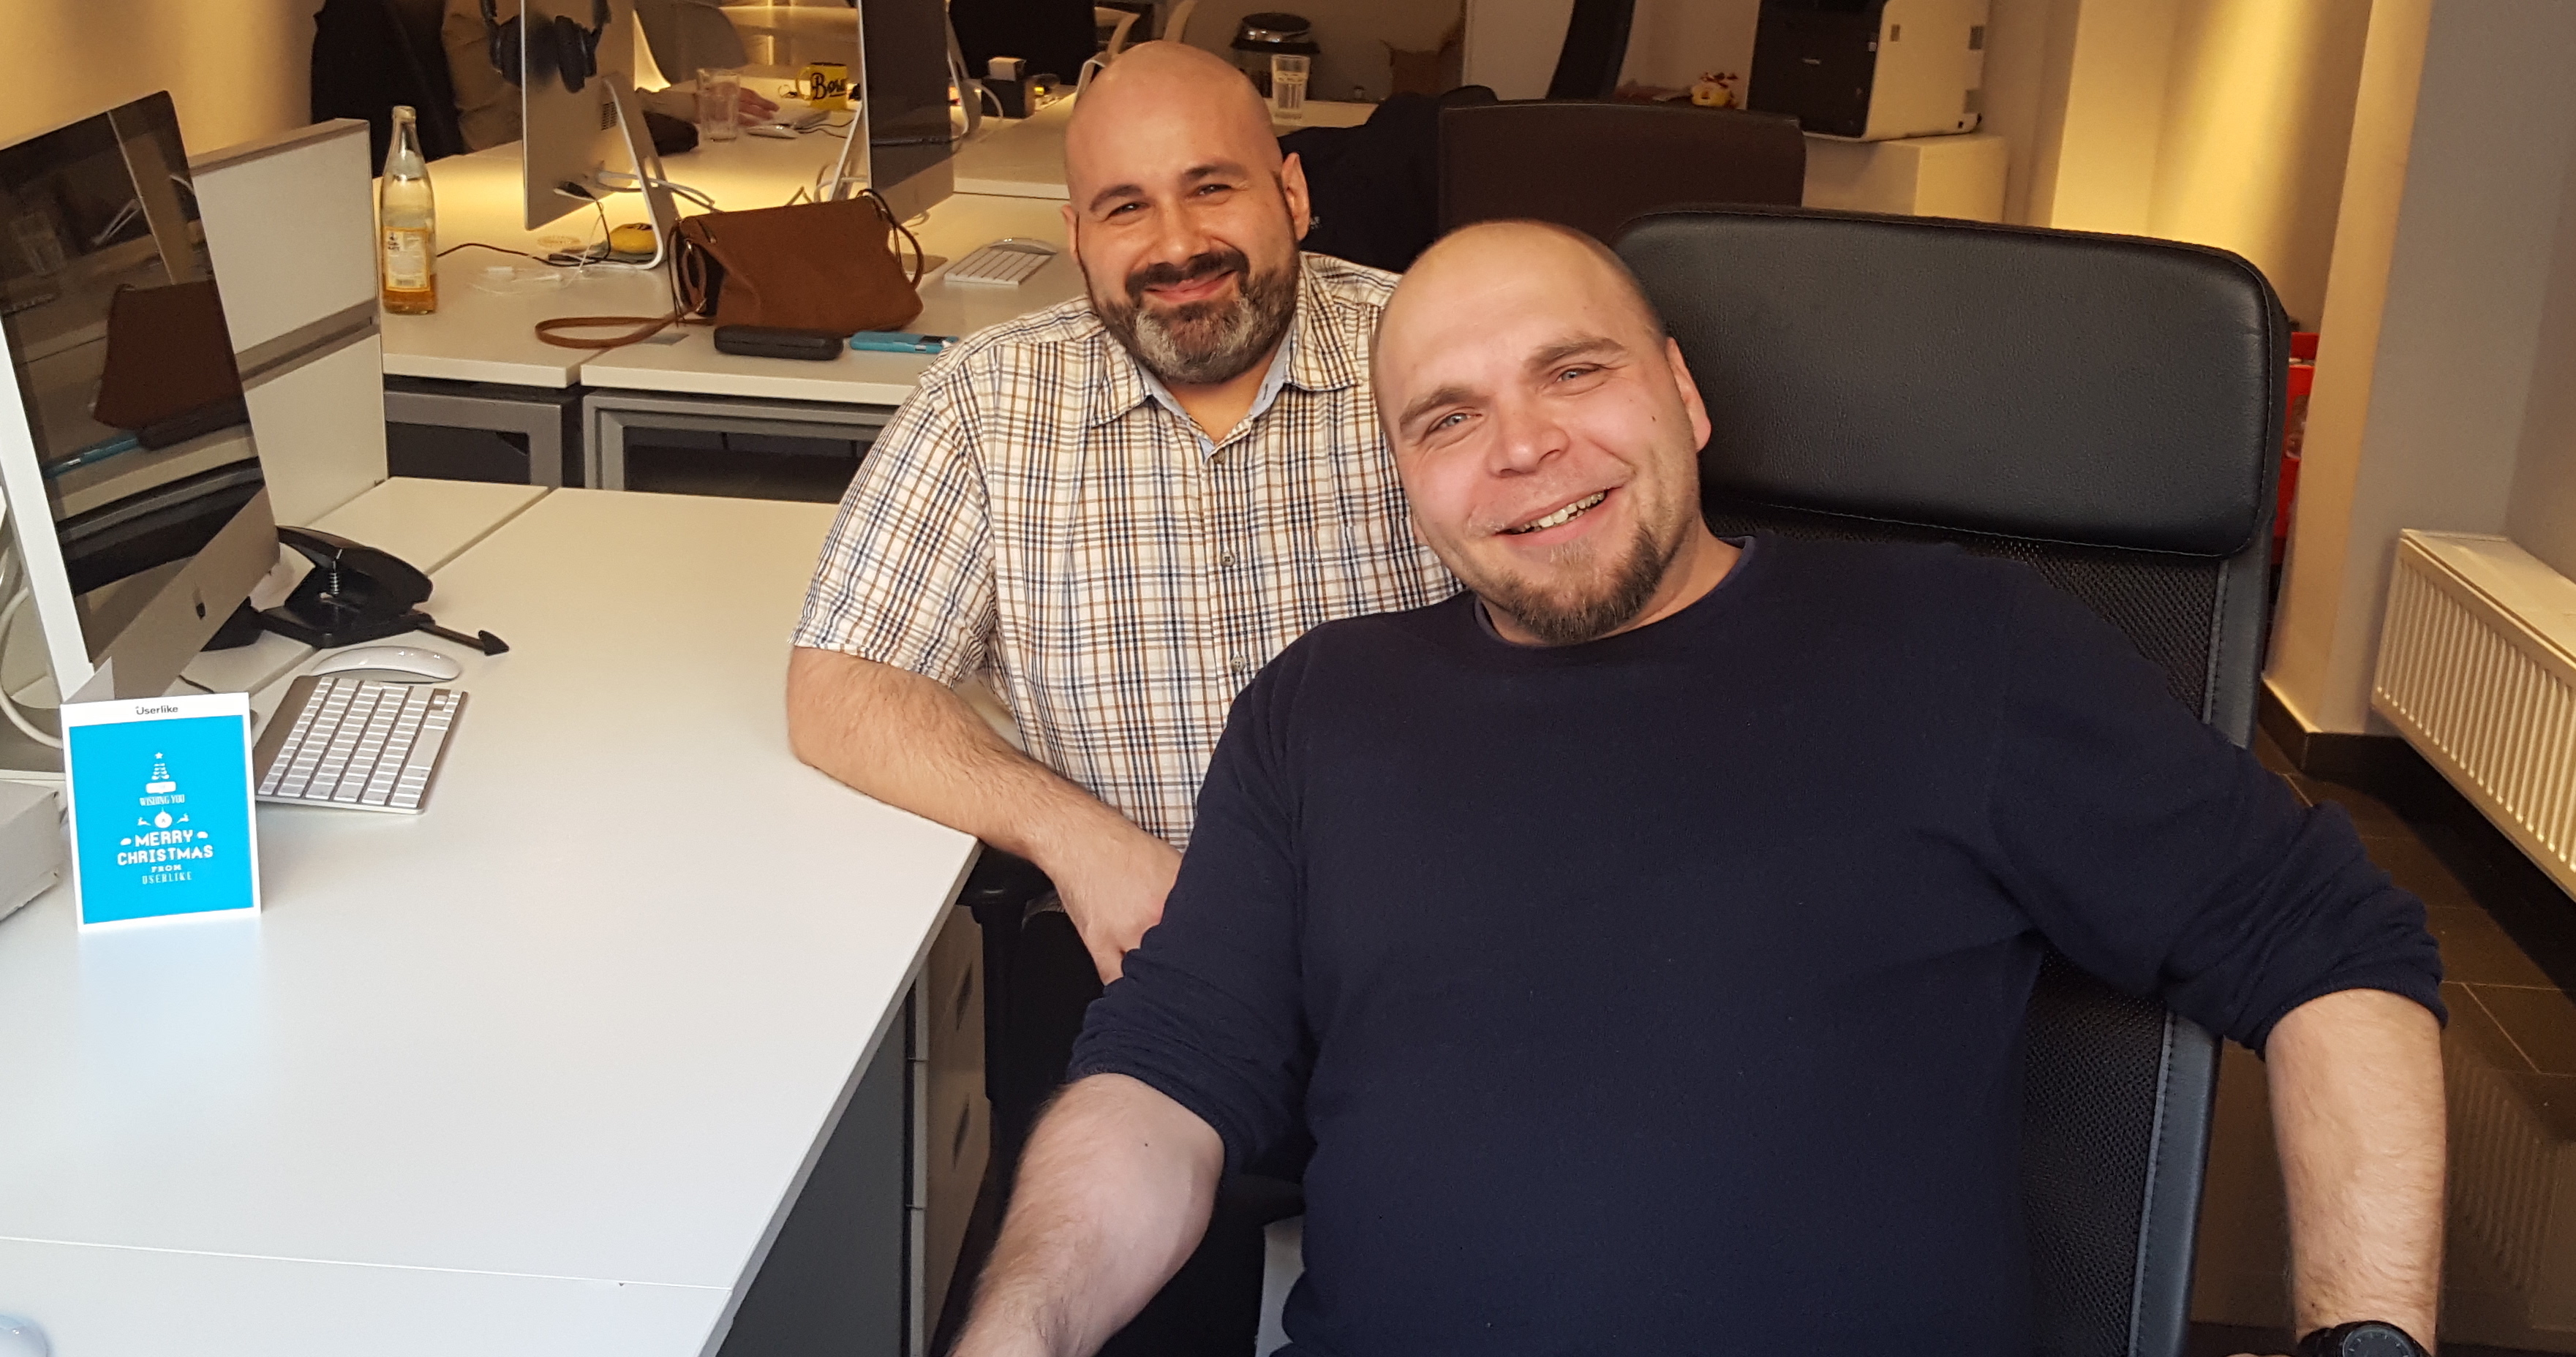 Michael and Jörn, Userlike's customer success duo.